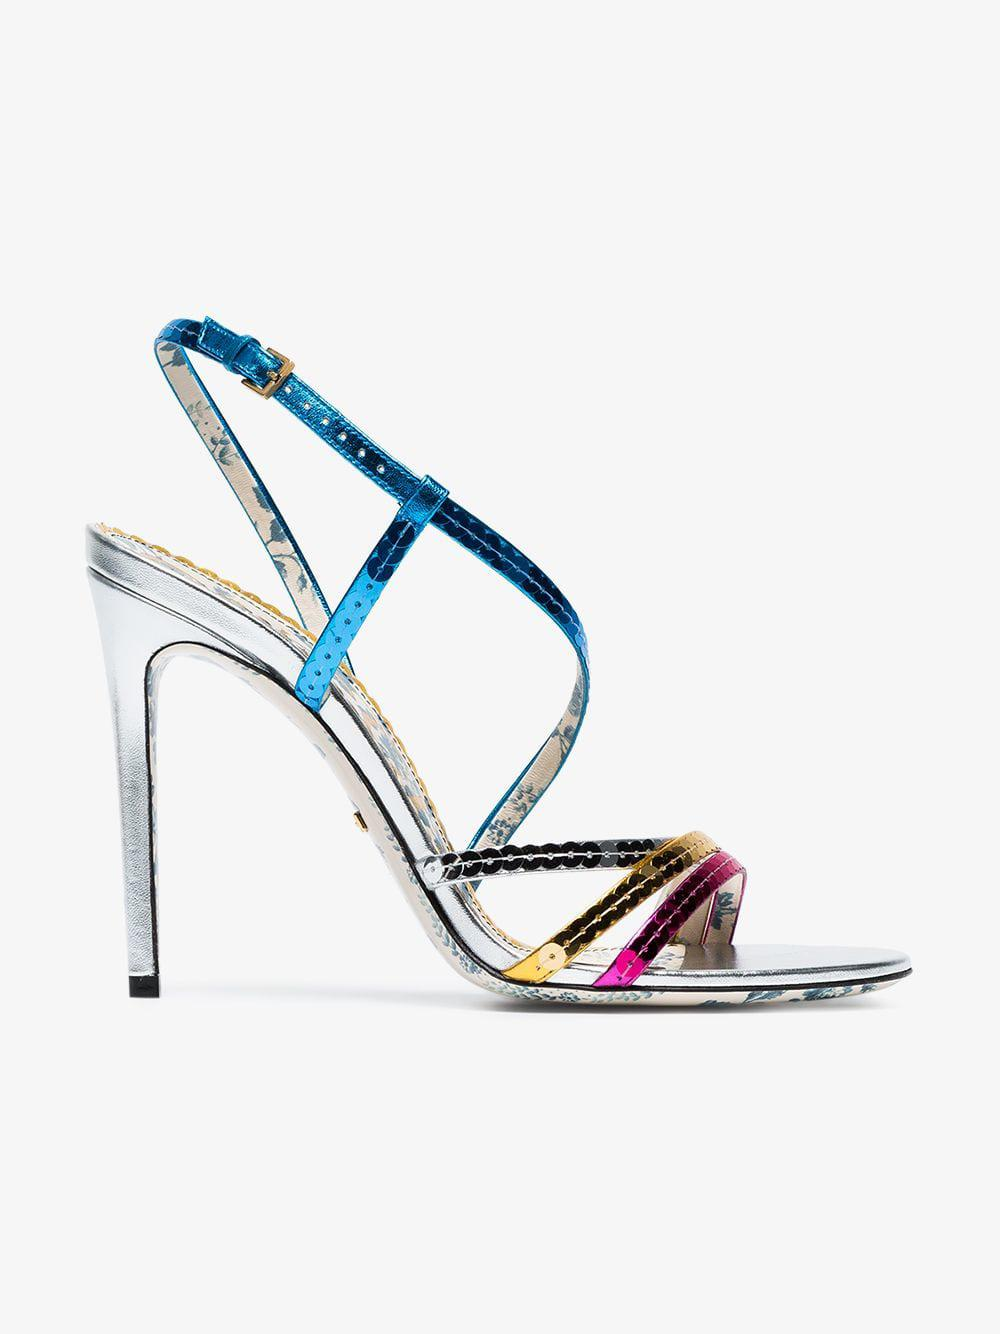 c76fbb4d440 Lyst - Gucci Metallic Leather Sandals With Sequins in Metallic